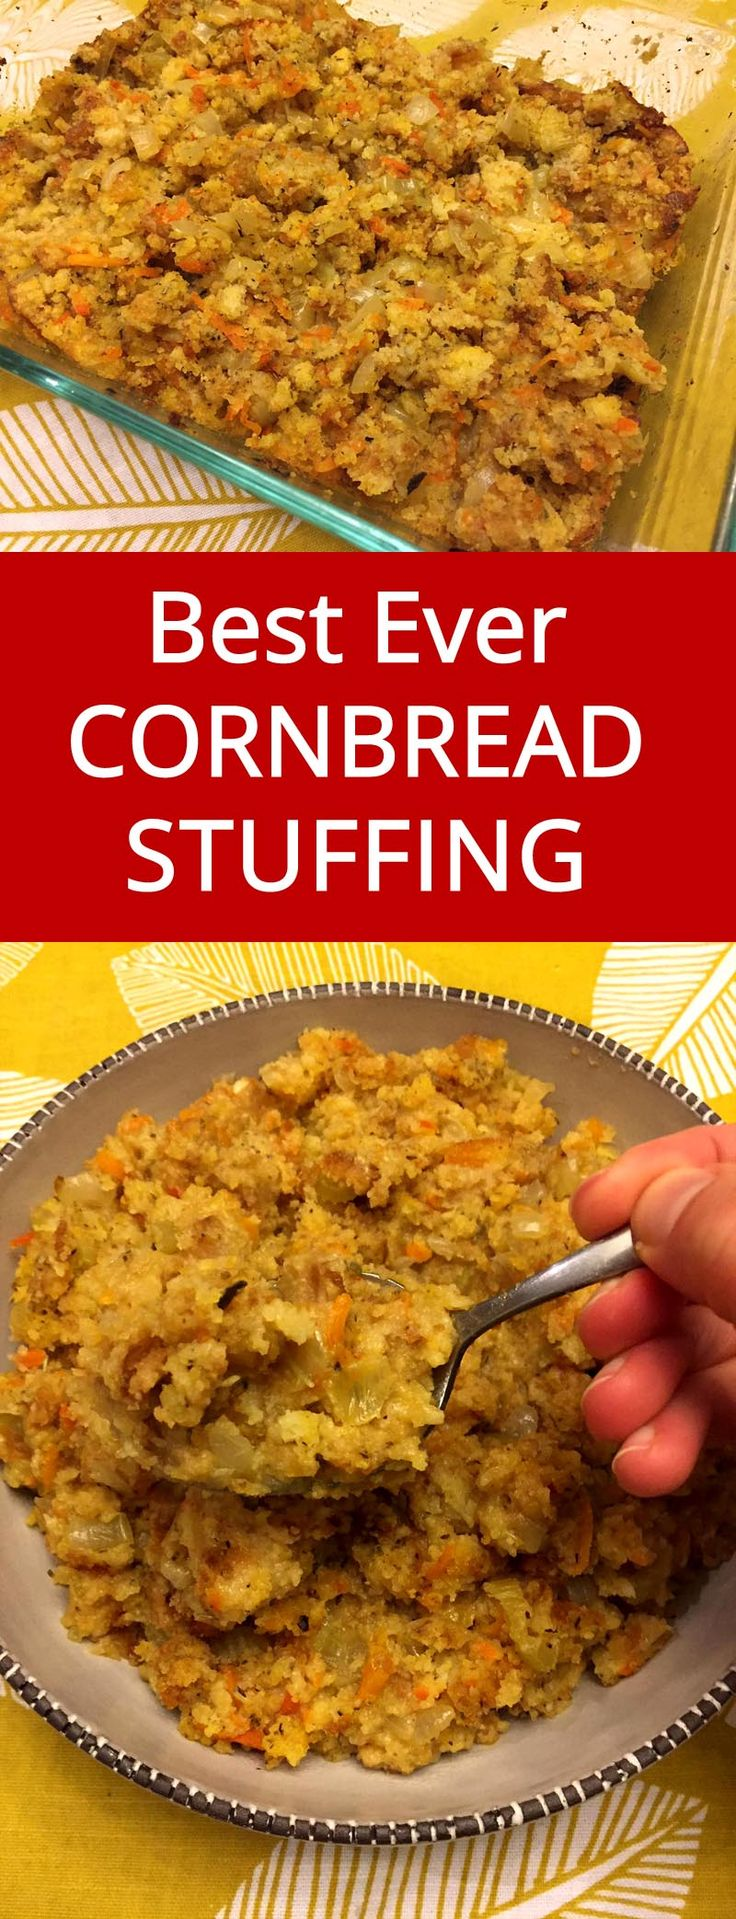 Easy Cornbread Stuffing - Best Ever!  This is the only stuffing recipe I'll ever need!   MelanieCooks.com